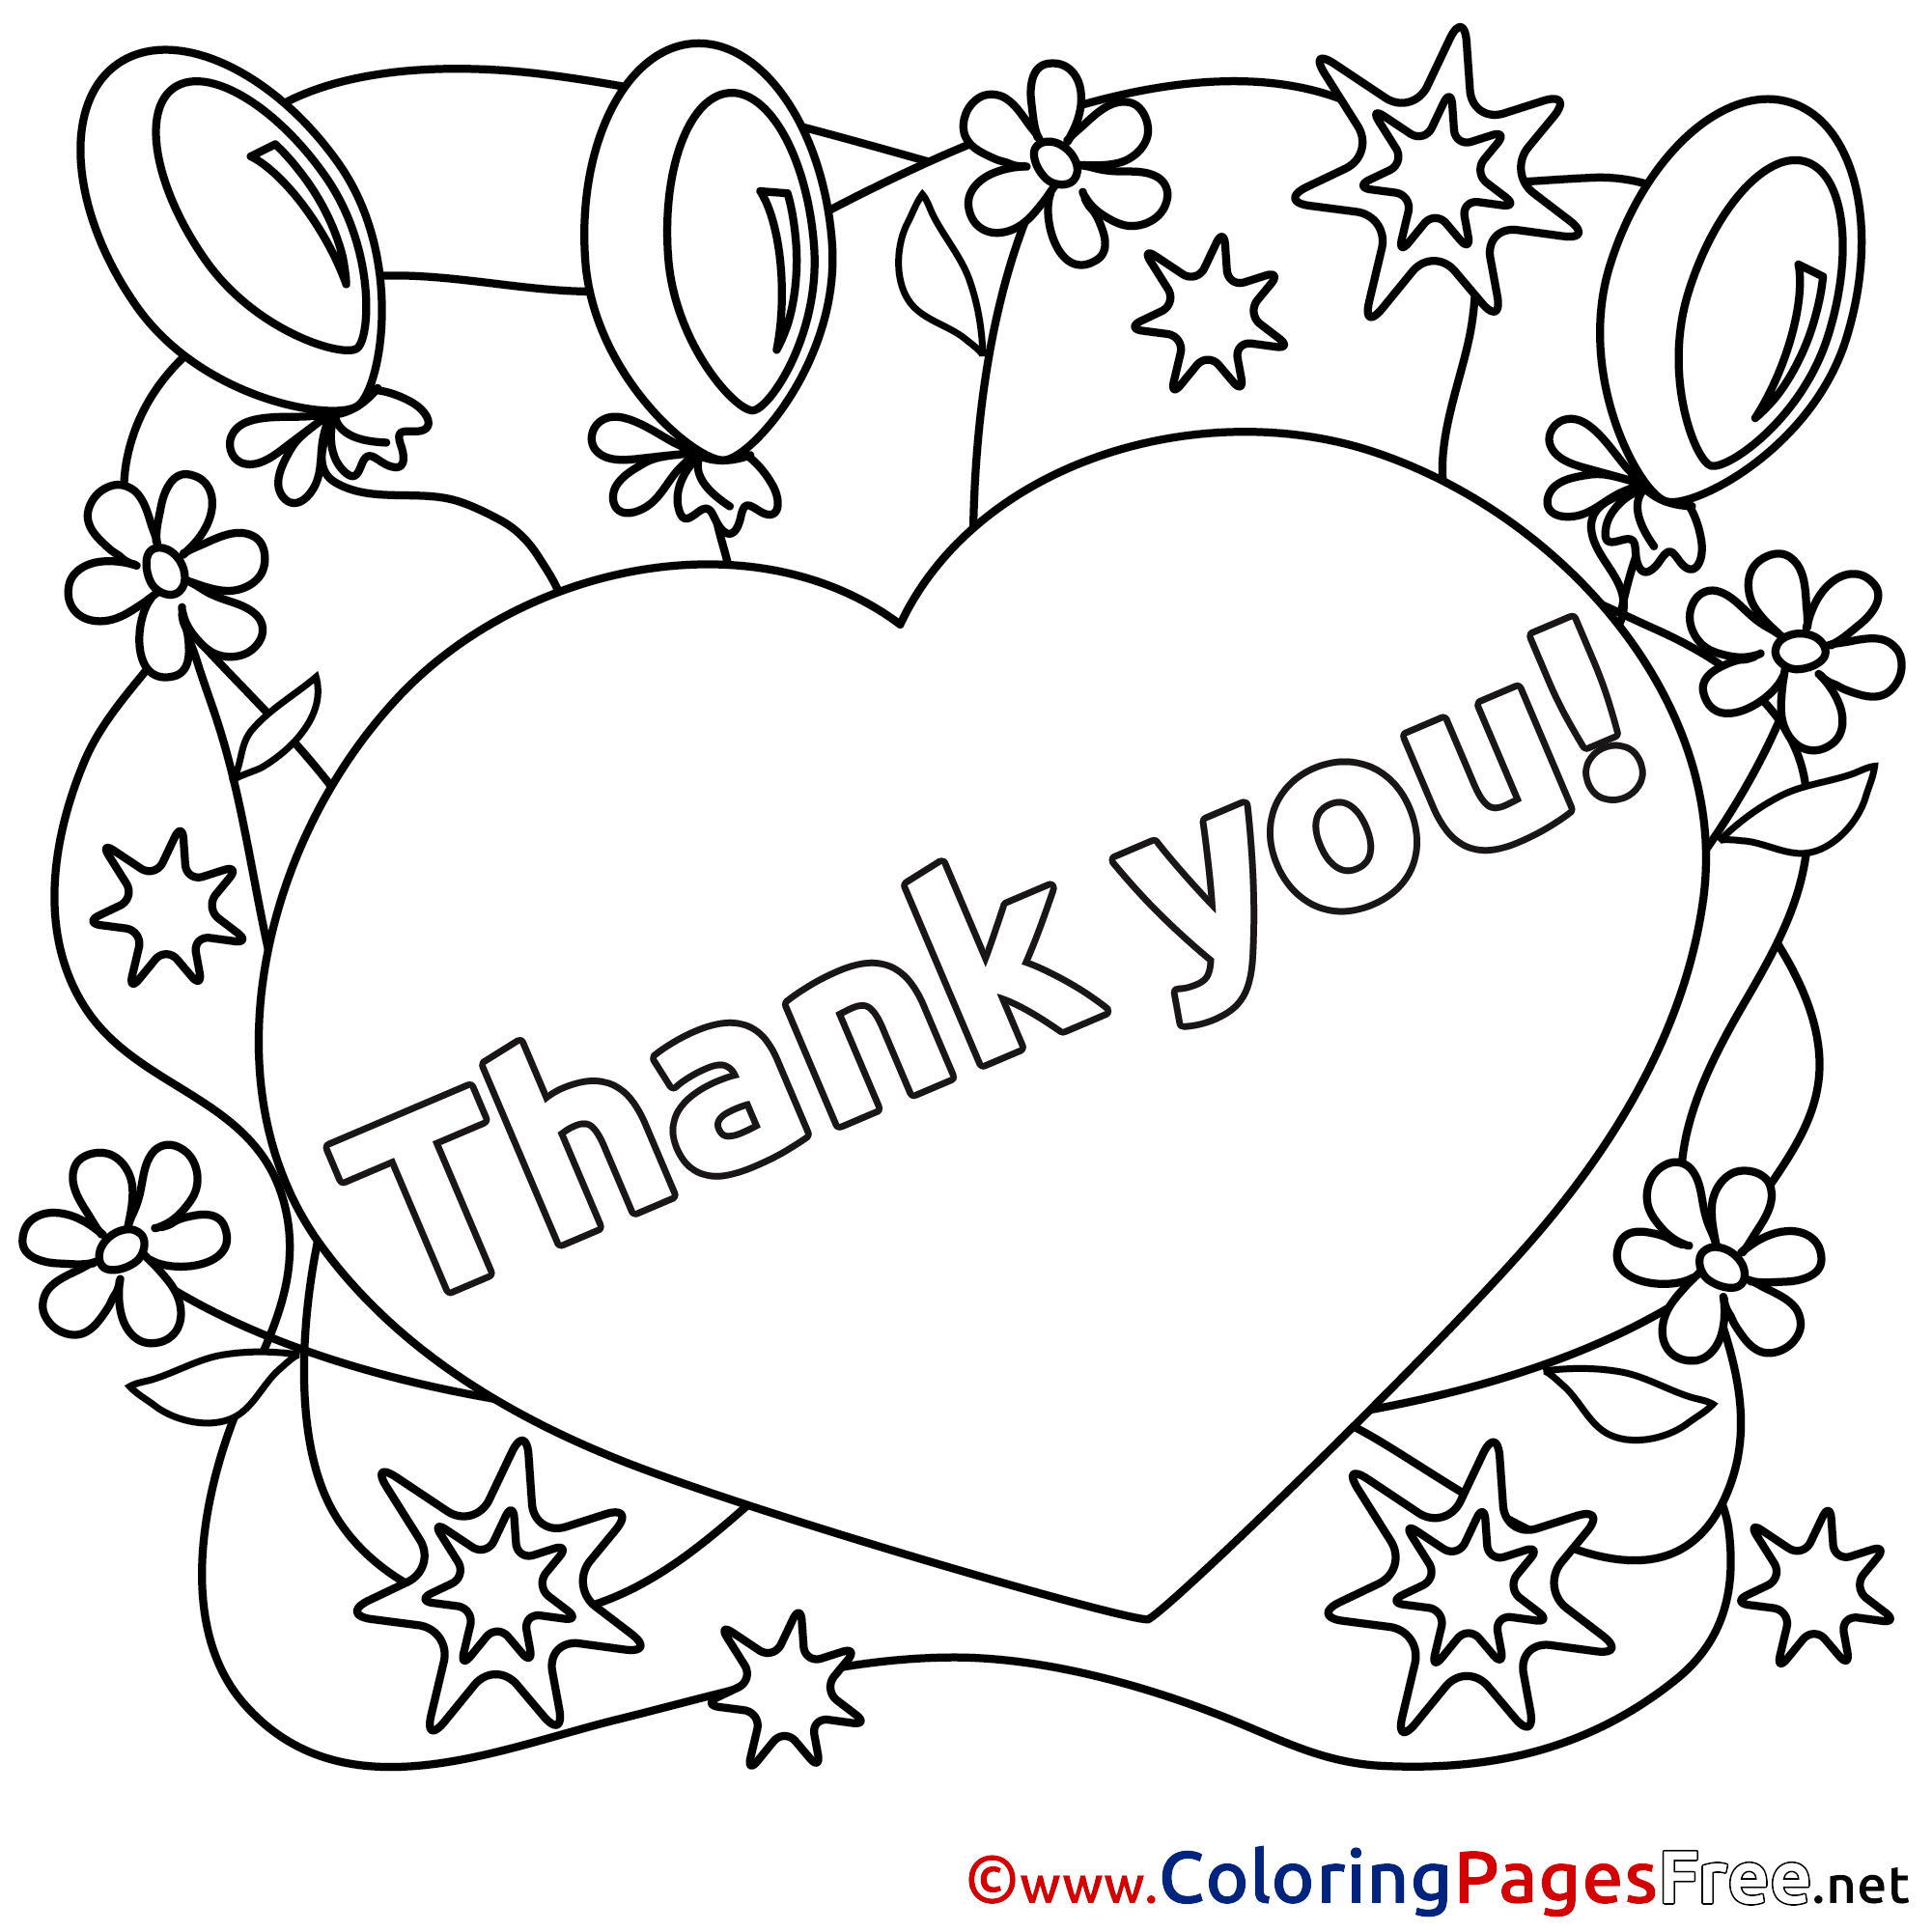 2001x2001 Heart Balloons For Kids Thank You Colouring Page